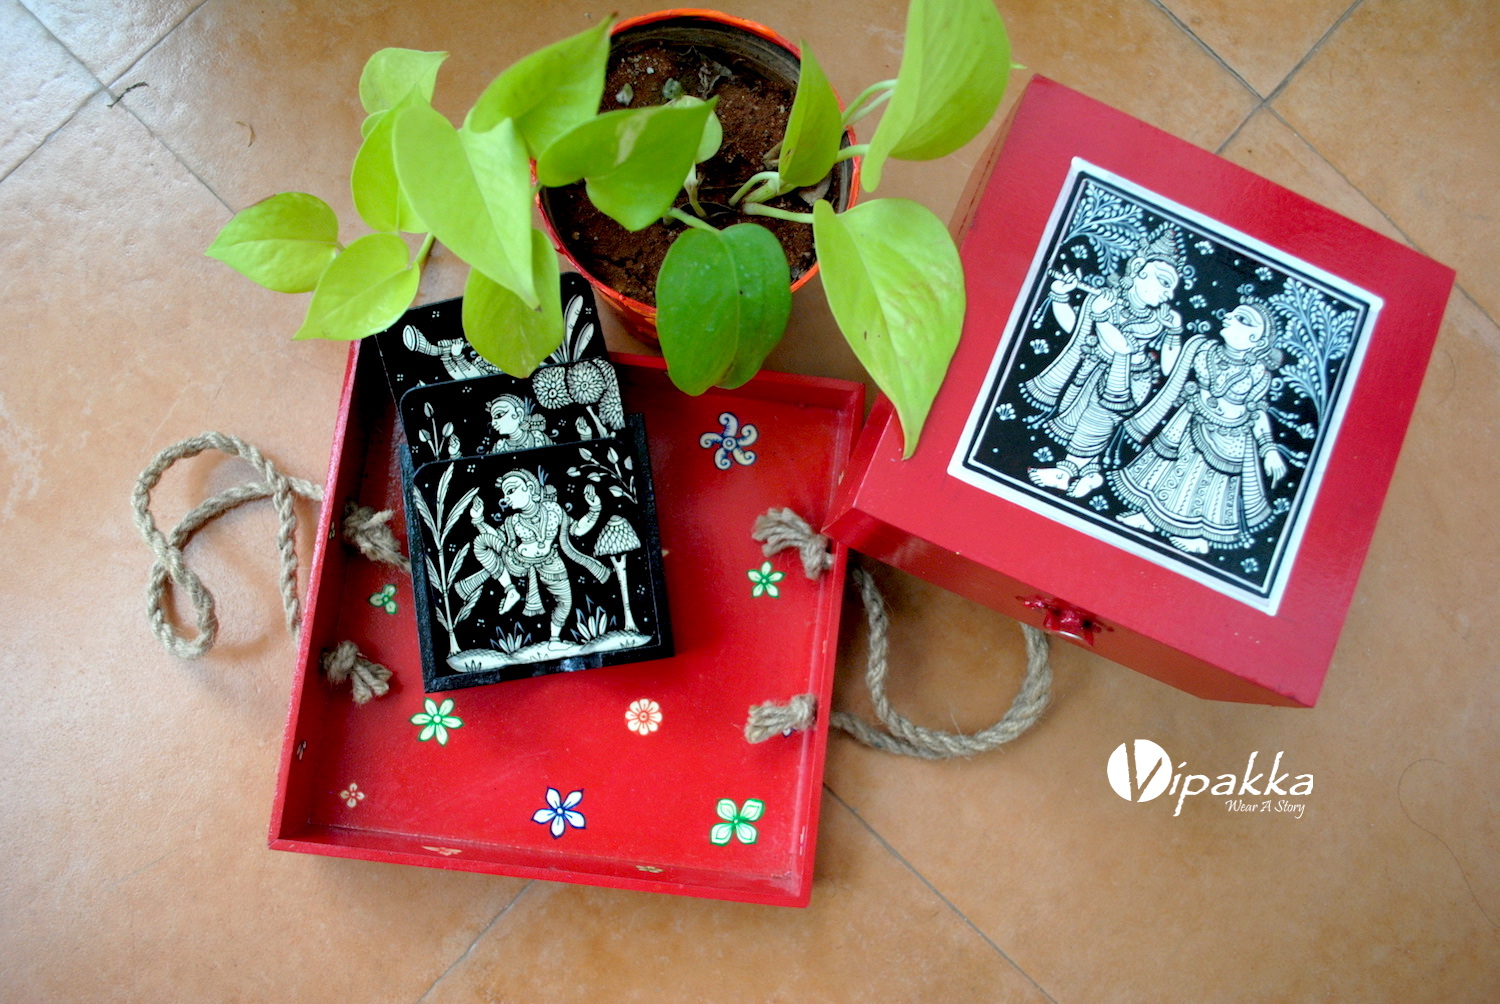 Vipakka-gifting-combo-6 Top 6 Gift Ideas To Make This Diwali Special